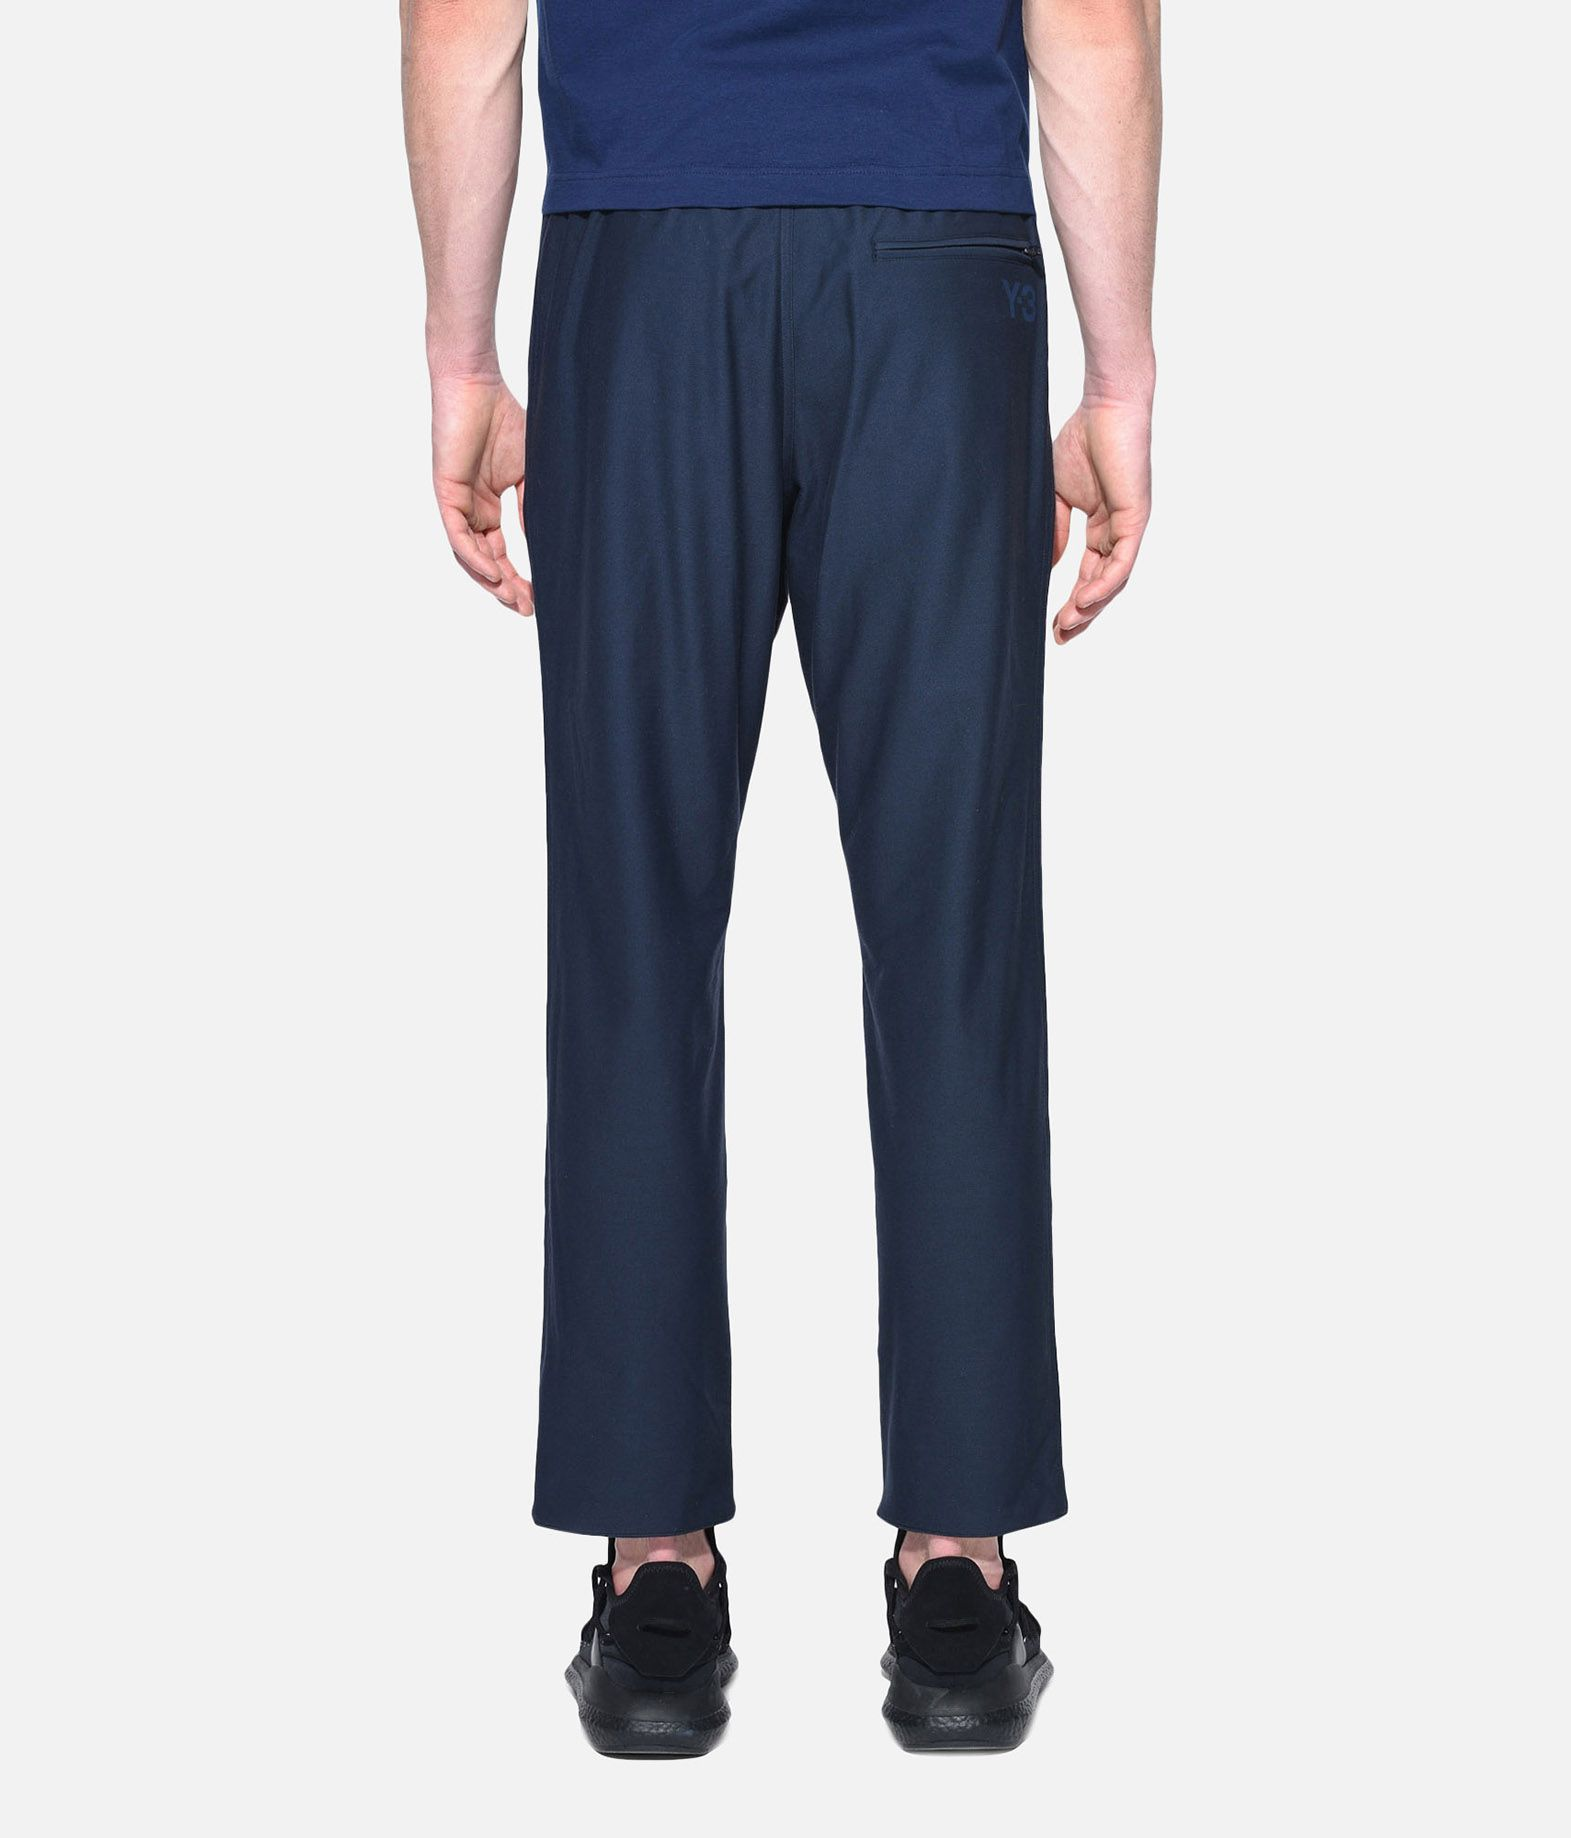 Y-3 Y-3 Twill Cropped Pants Cropped pant Man d